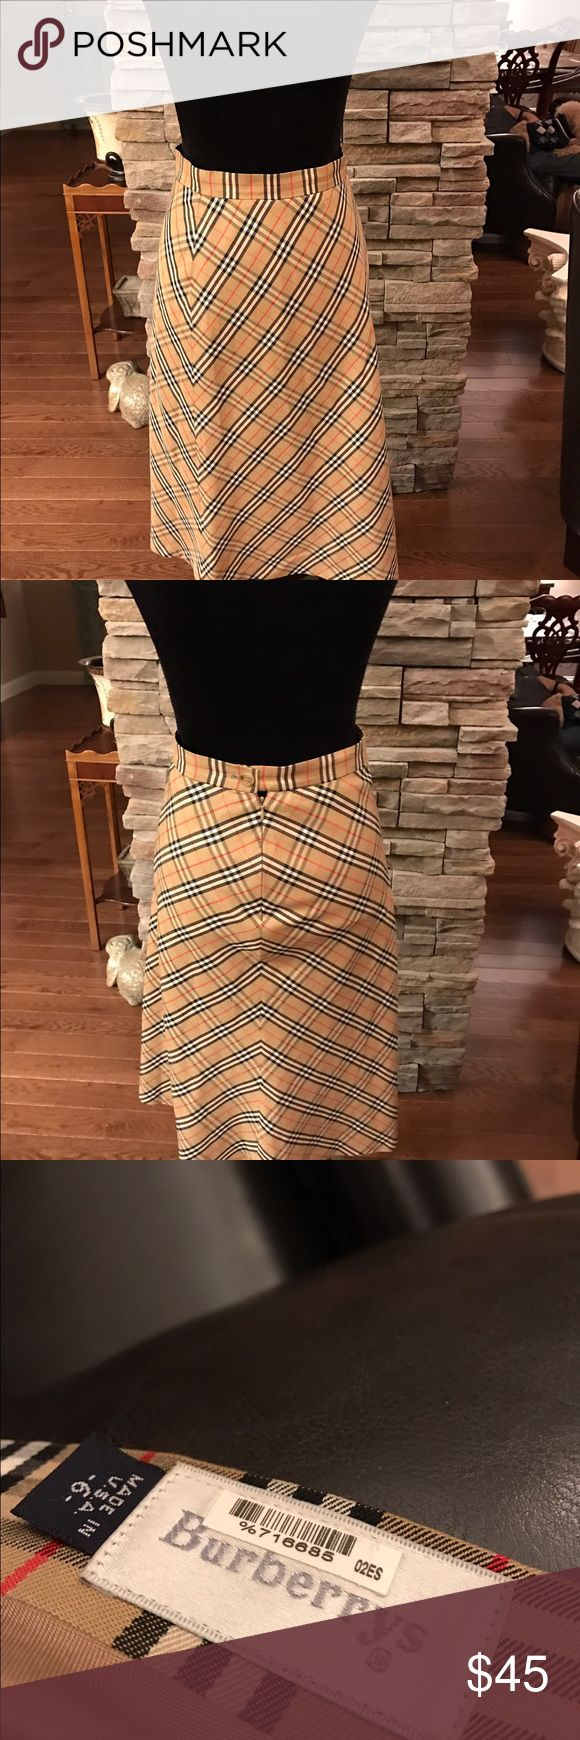 Burberry skirt Burberry skirt, maybe worn once.  It is 28 inches long, and waist is 27 1/2 inches, button closed, pja0 Burberry Skirts Midi